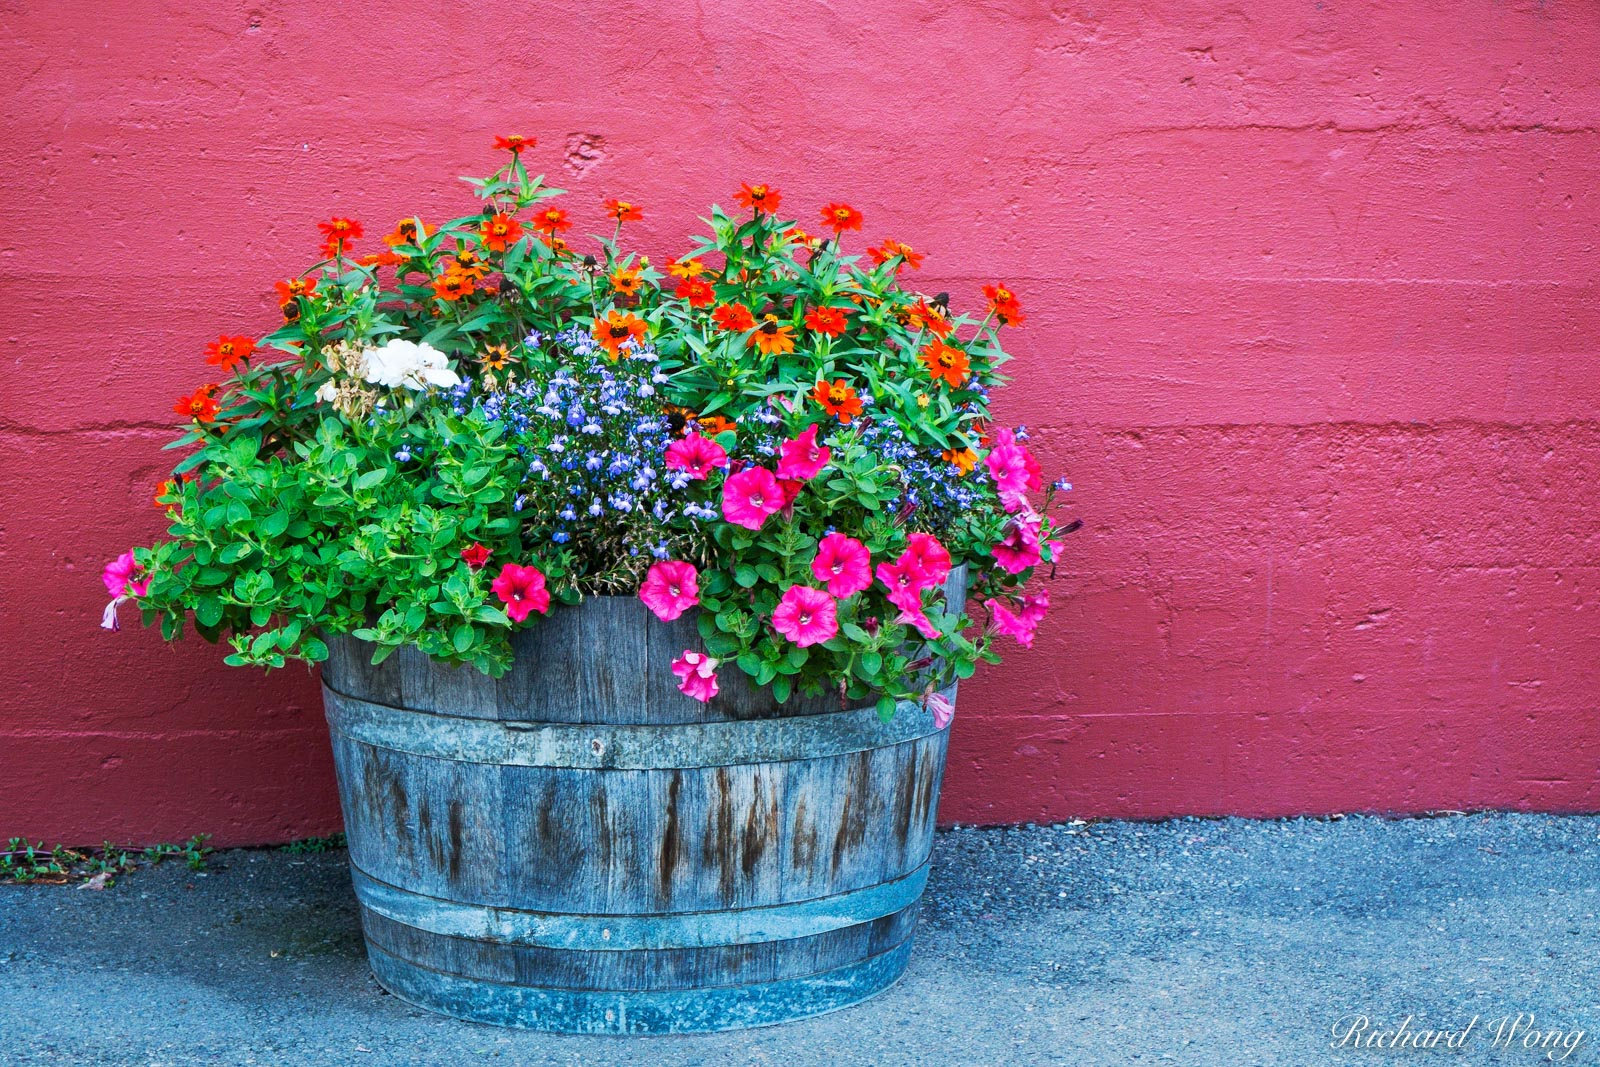 Korbel Winery Potted Flowers Against Red Wall, Guerneville, California, photo, photo